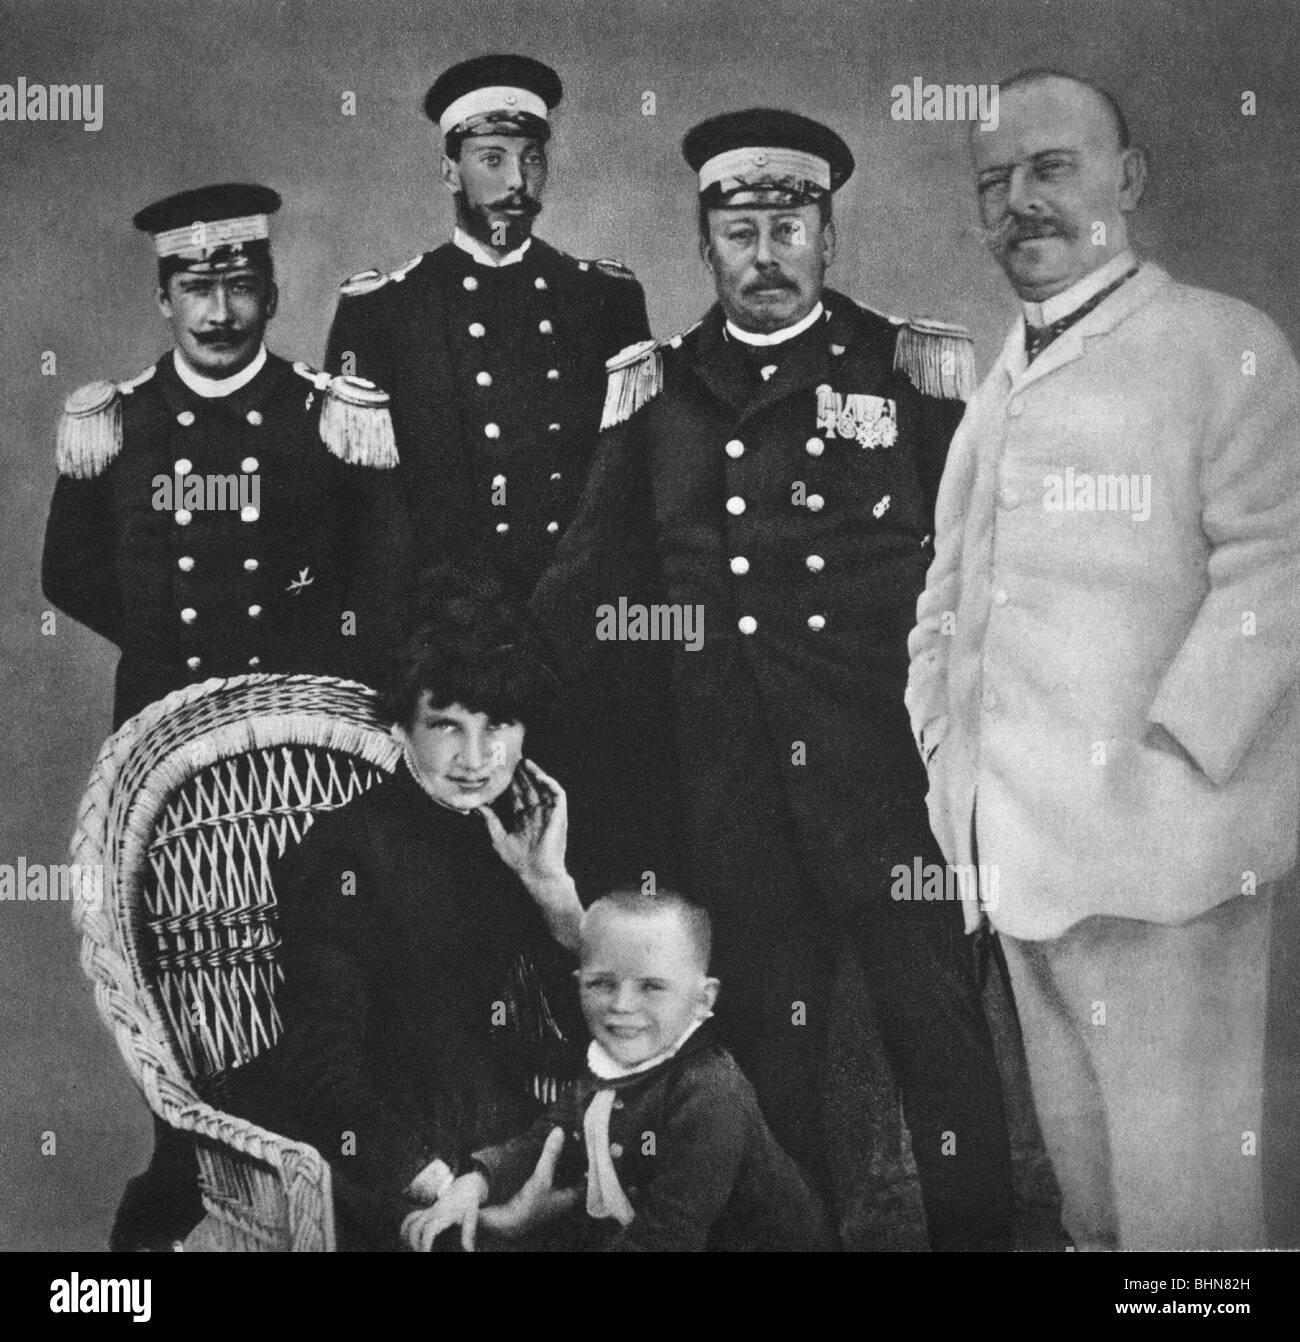 Goering, Hermann, 12.1.1893 - 15.10.1946, German politician (NSDAP), as child, group picture with his parents and - Stock Image